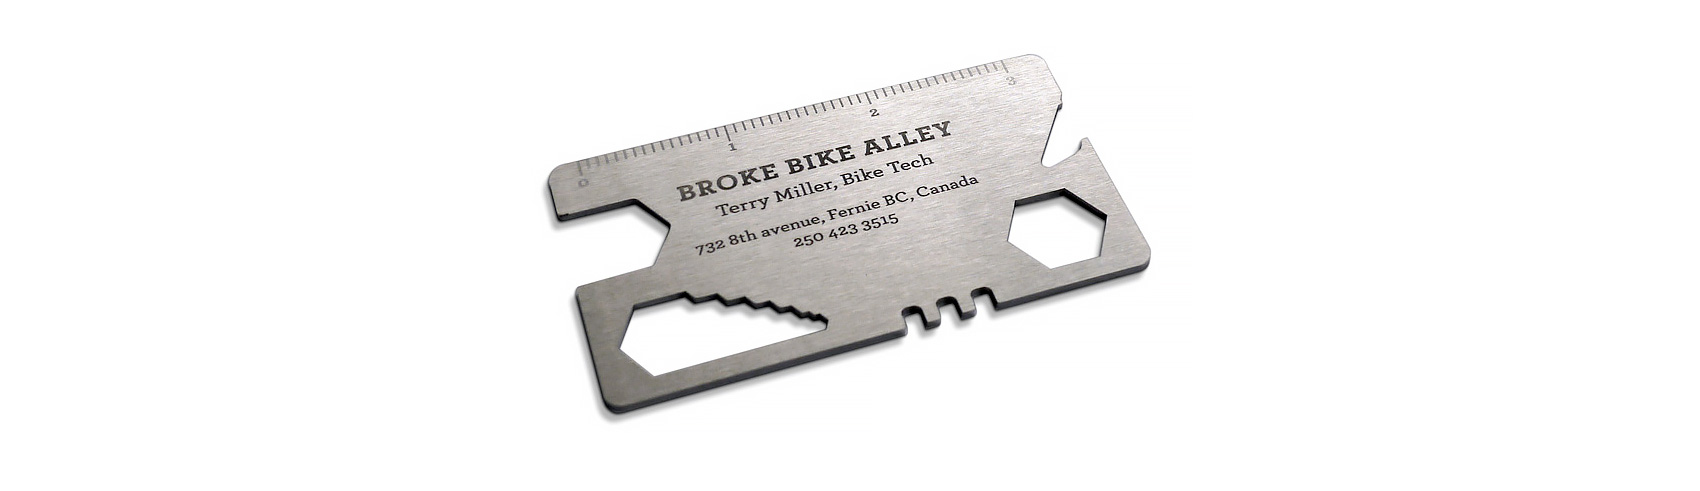 Bicycle Tools Business Card